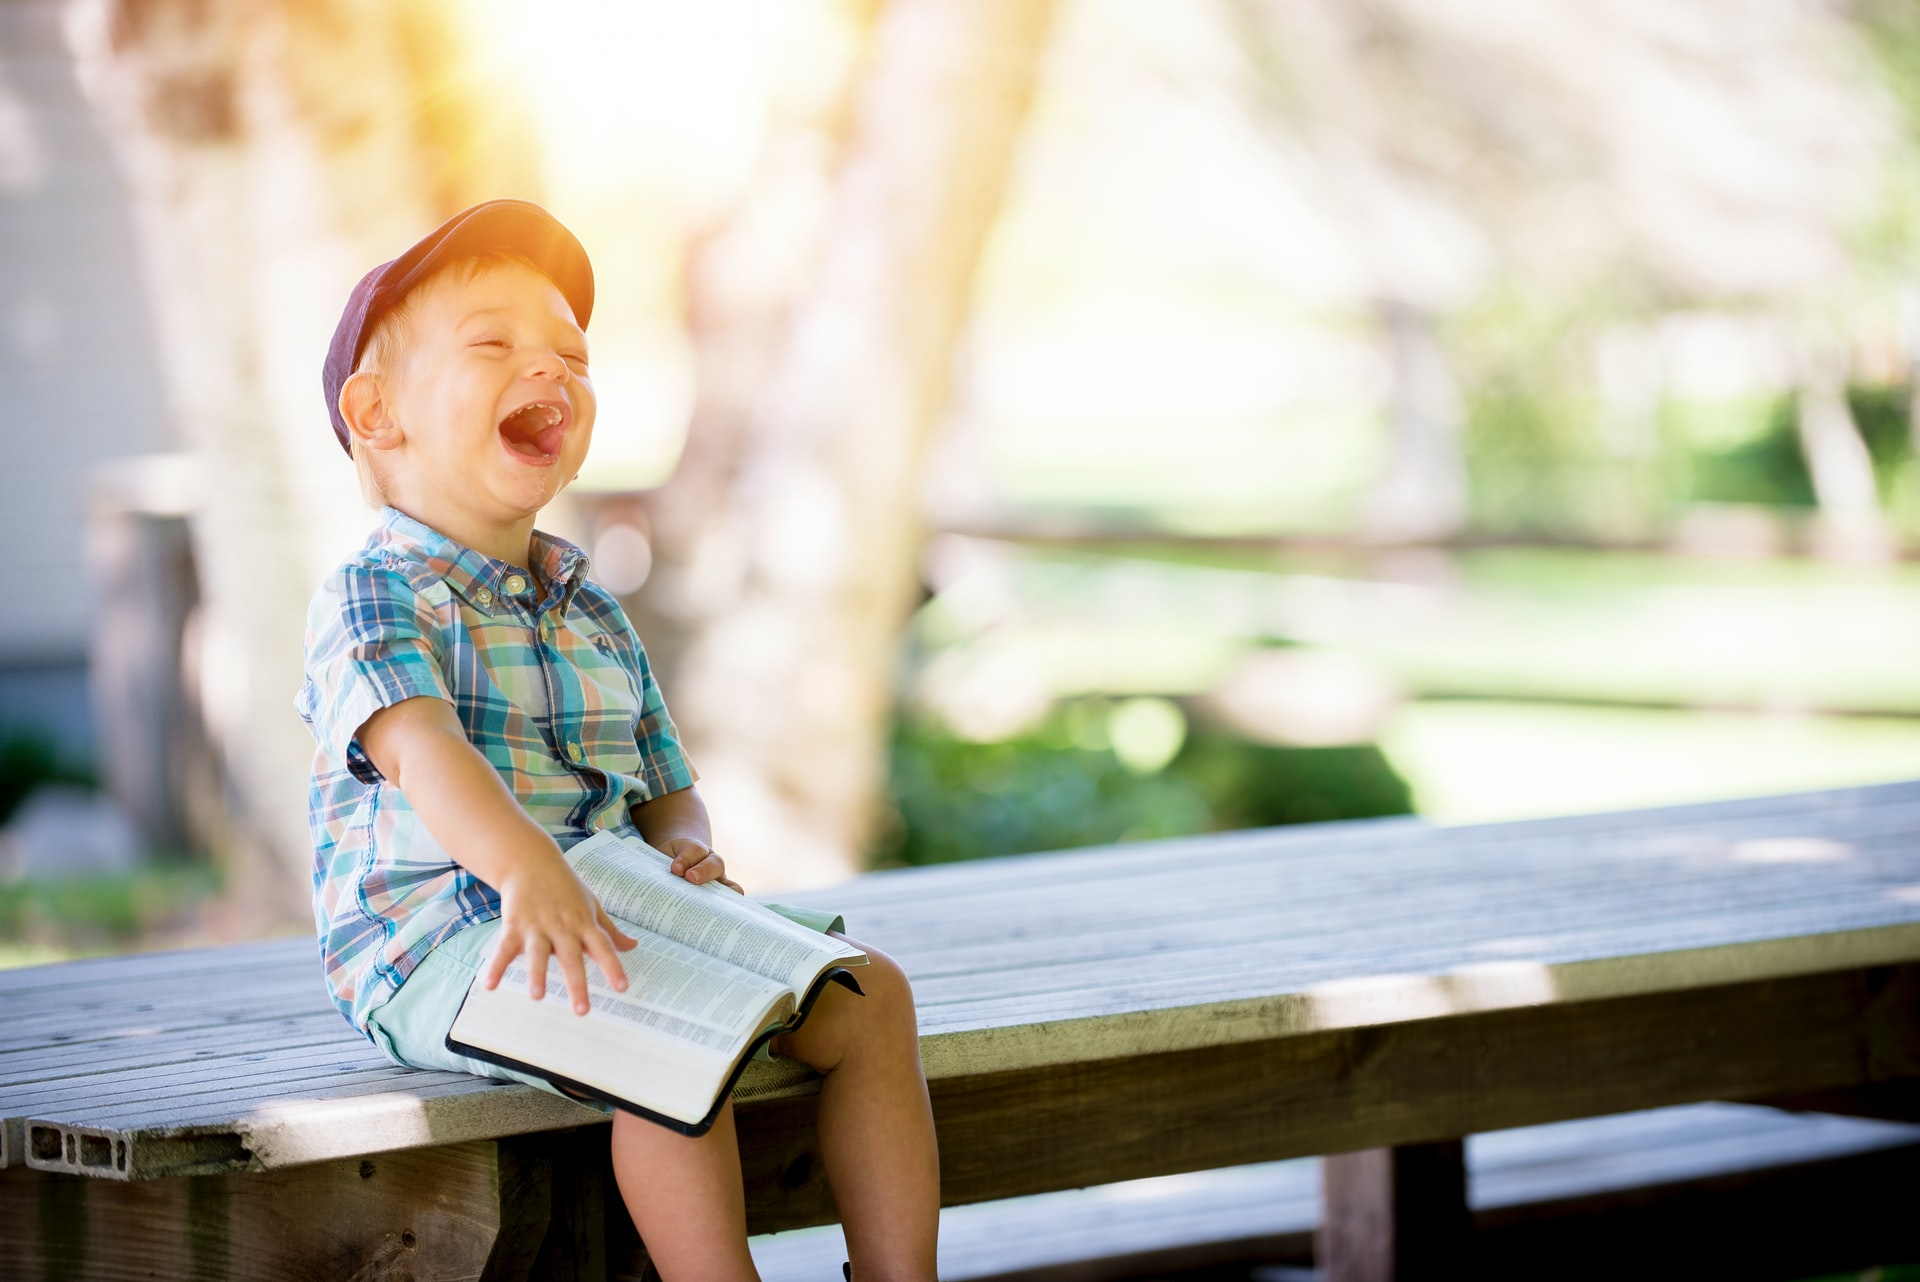 Bad Day? 12 Ways to Feel Better